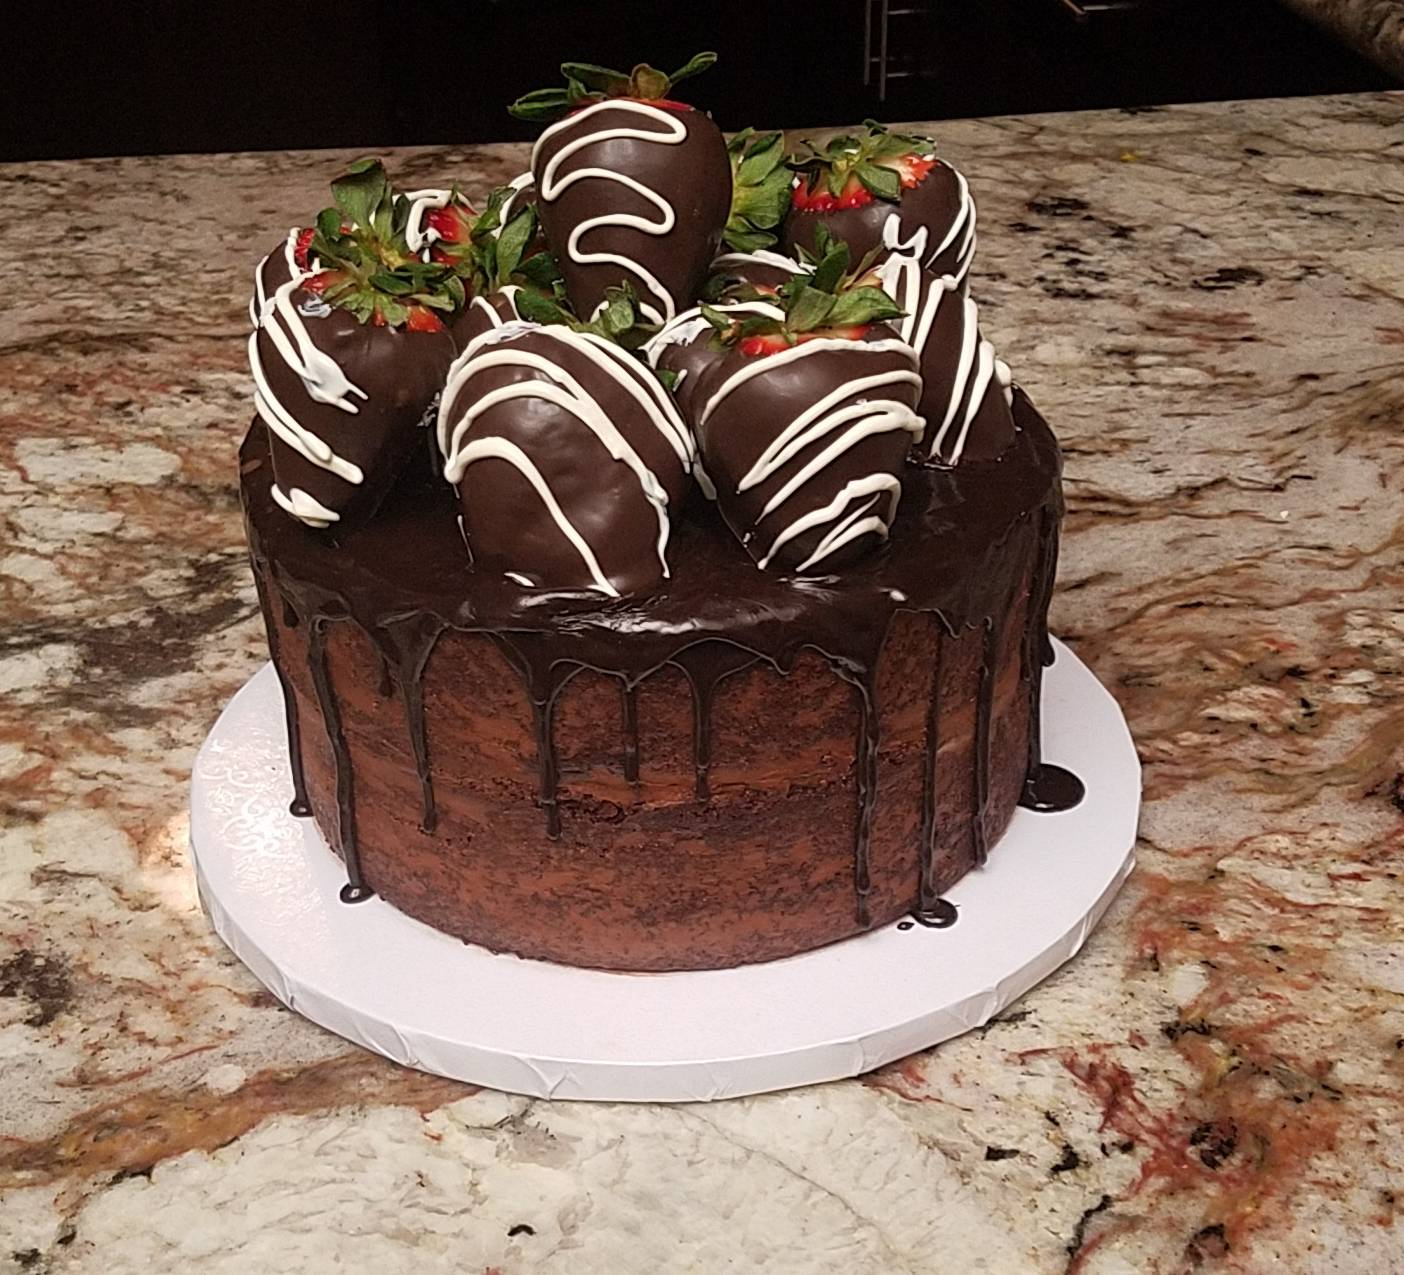 Naked Chocolate Drip Cake with Chocolate Covered Strawberries on Top